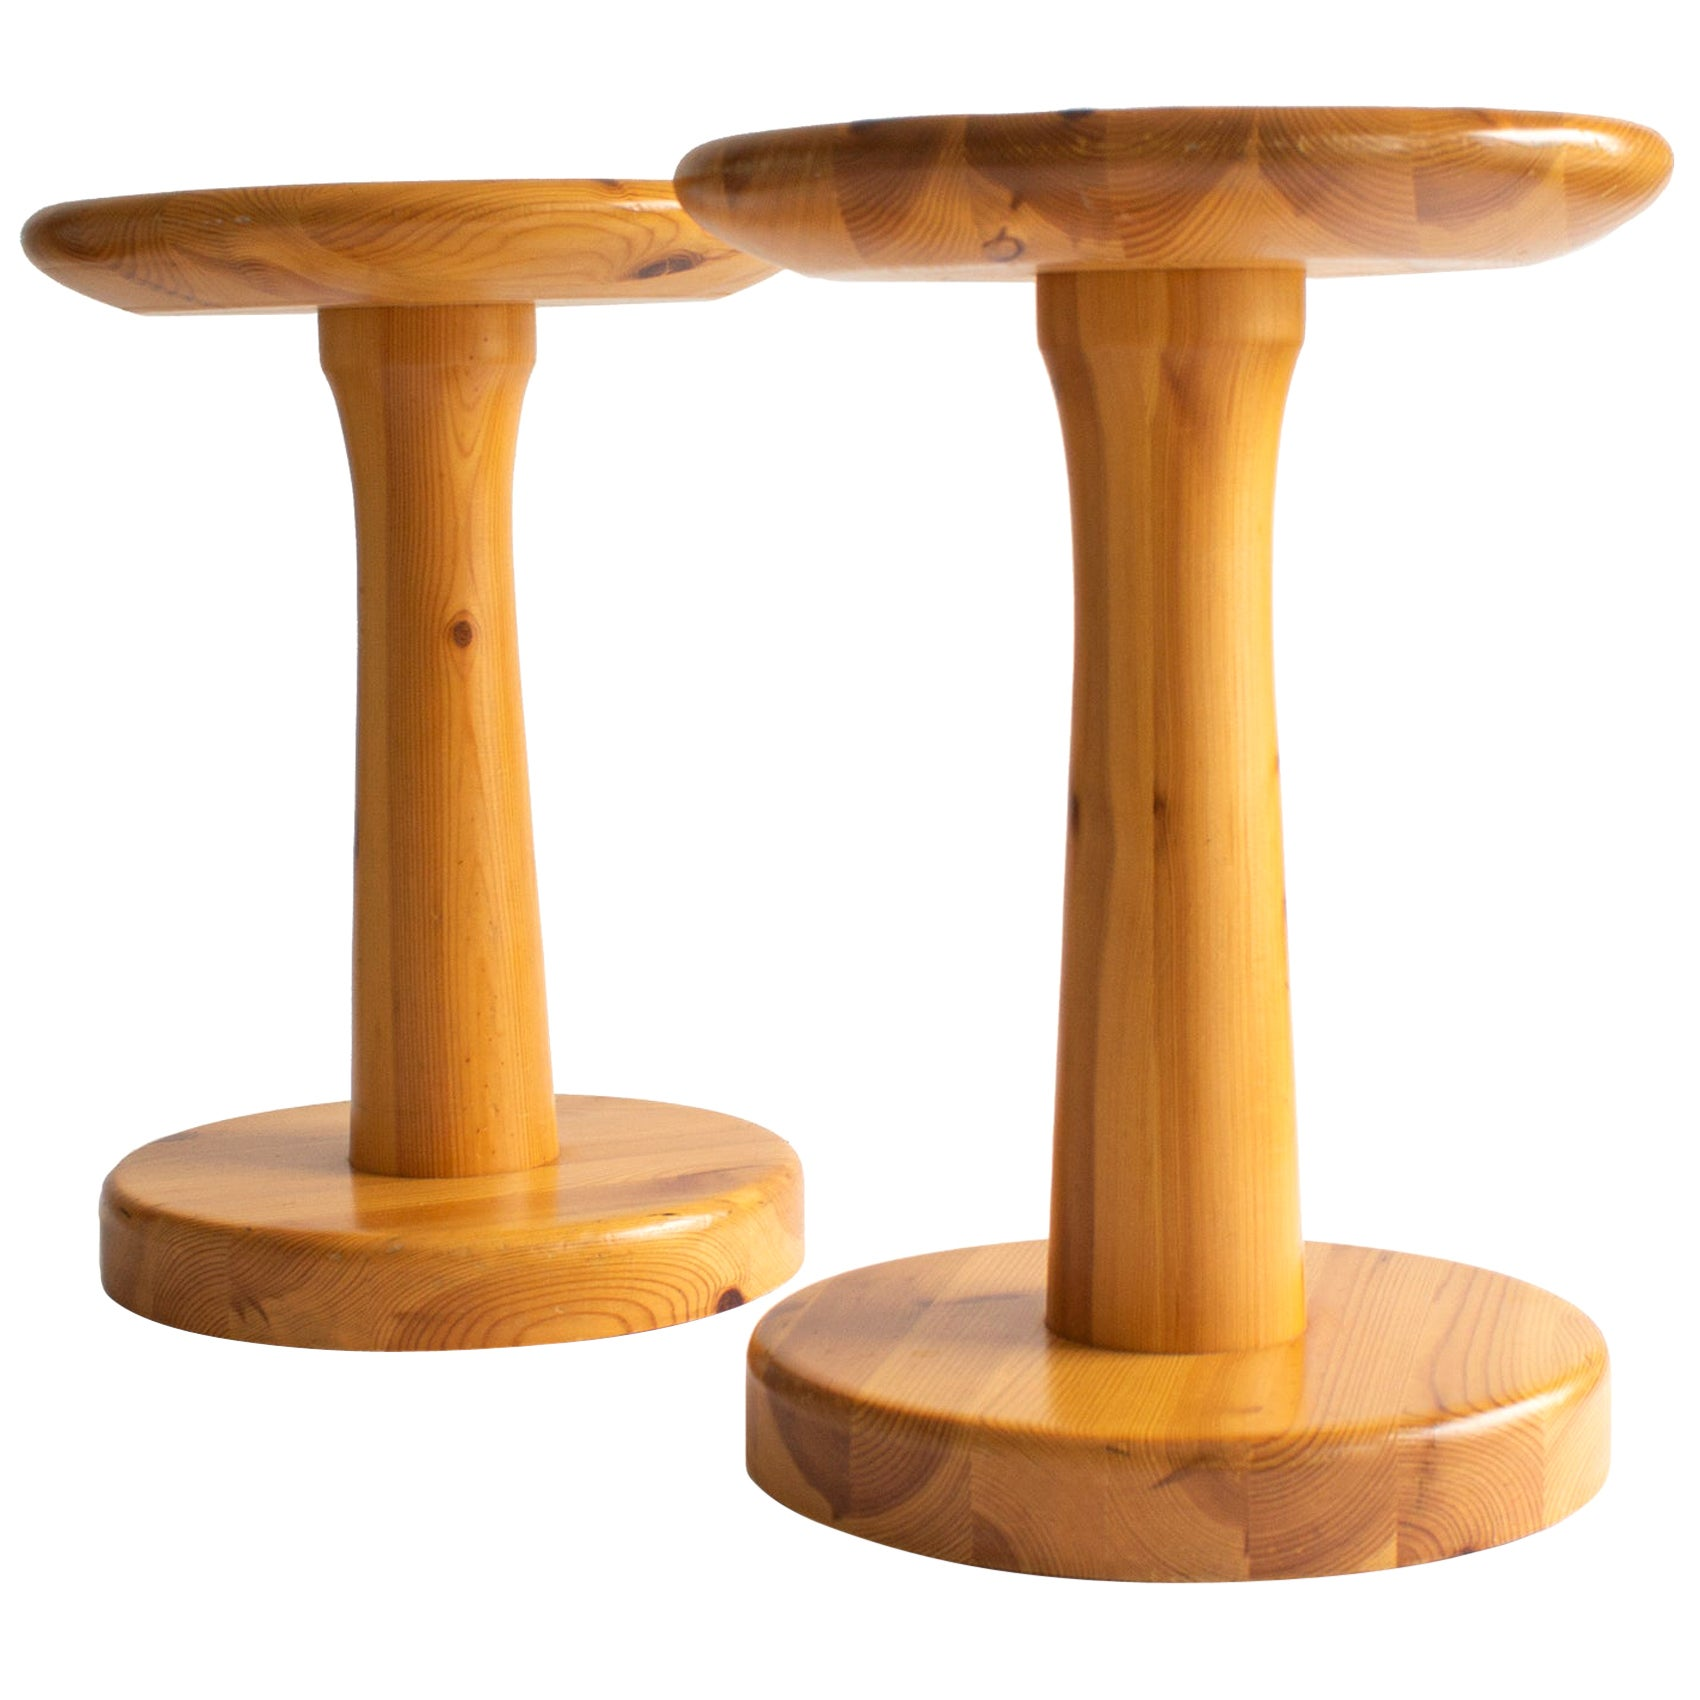 Pair of Scandinavian Modern Tables or Stools from 1960s Made of Solid Pine Wood